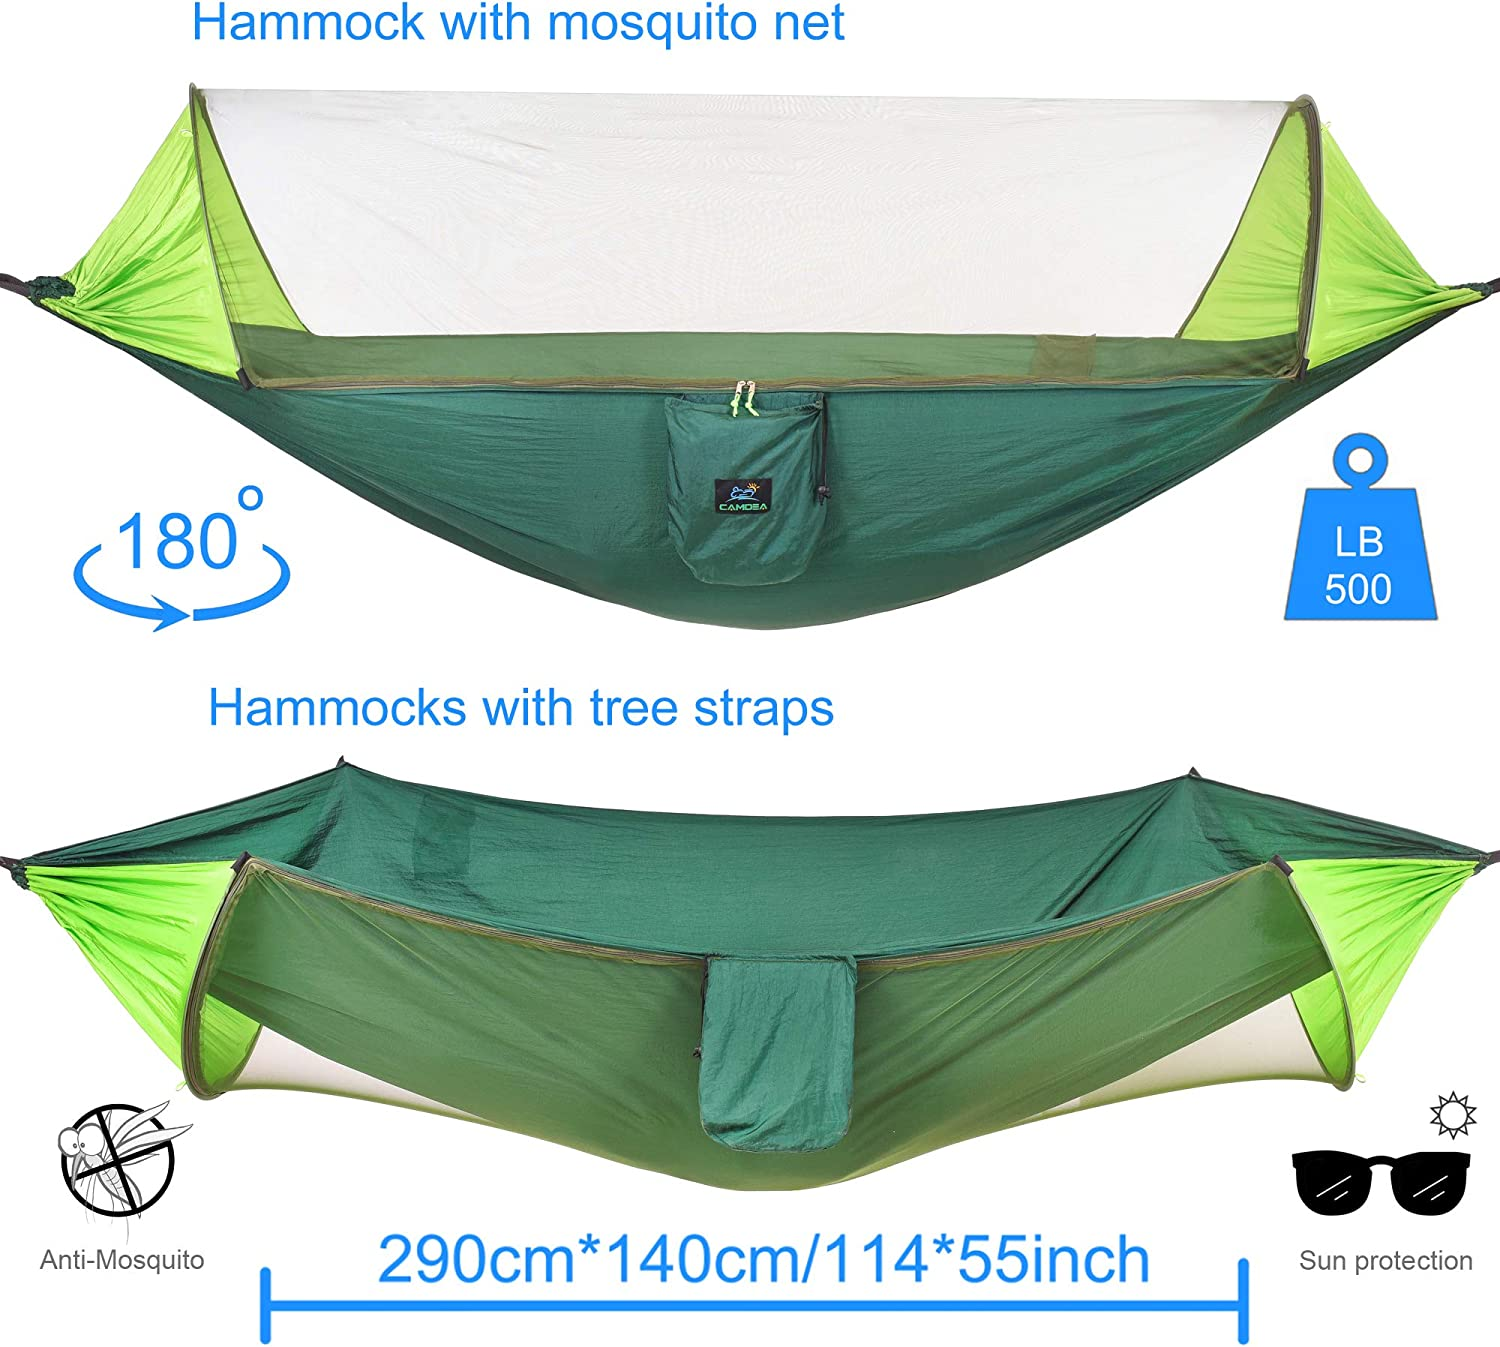 Garden Outdoor Windproof Hammock Tent Swing for Sleeping Ultra Lightweight Portable Camp Single//Double Hammock with Bug Net CAMDEA Camping Hammock with Mosquito Net for 2 Person Sport Travel